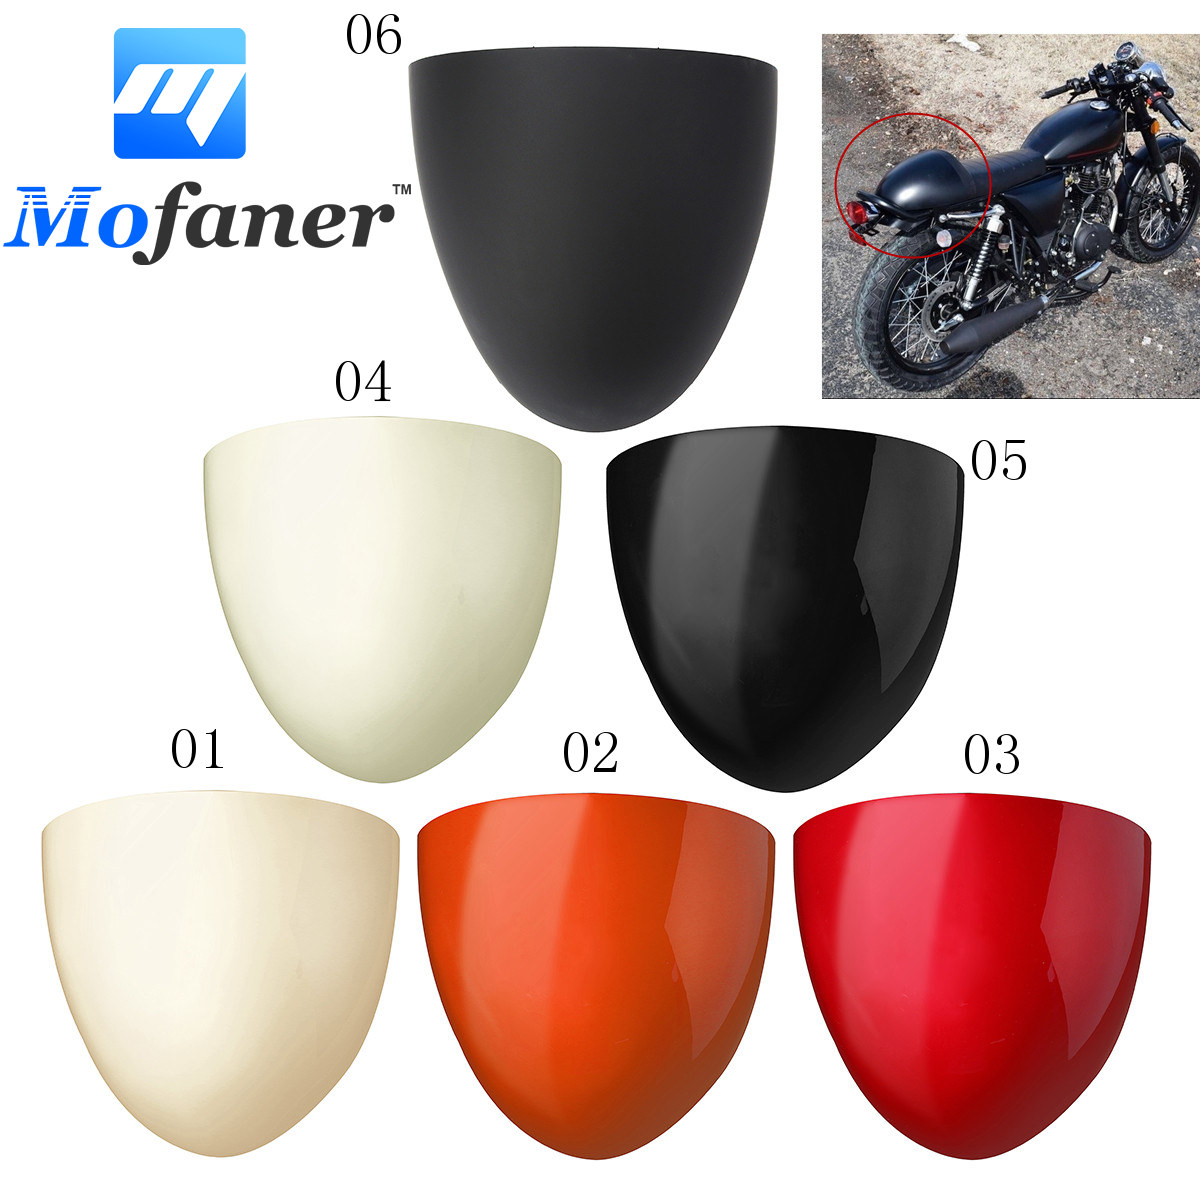 Universal Motorcycle ABS Rear Seat Cowl Cover For Cafe Racer Compartment Seat for ducati 848 1098 1198 all year new motorcycle passenger rear seat cover cowl motor seat cover case